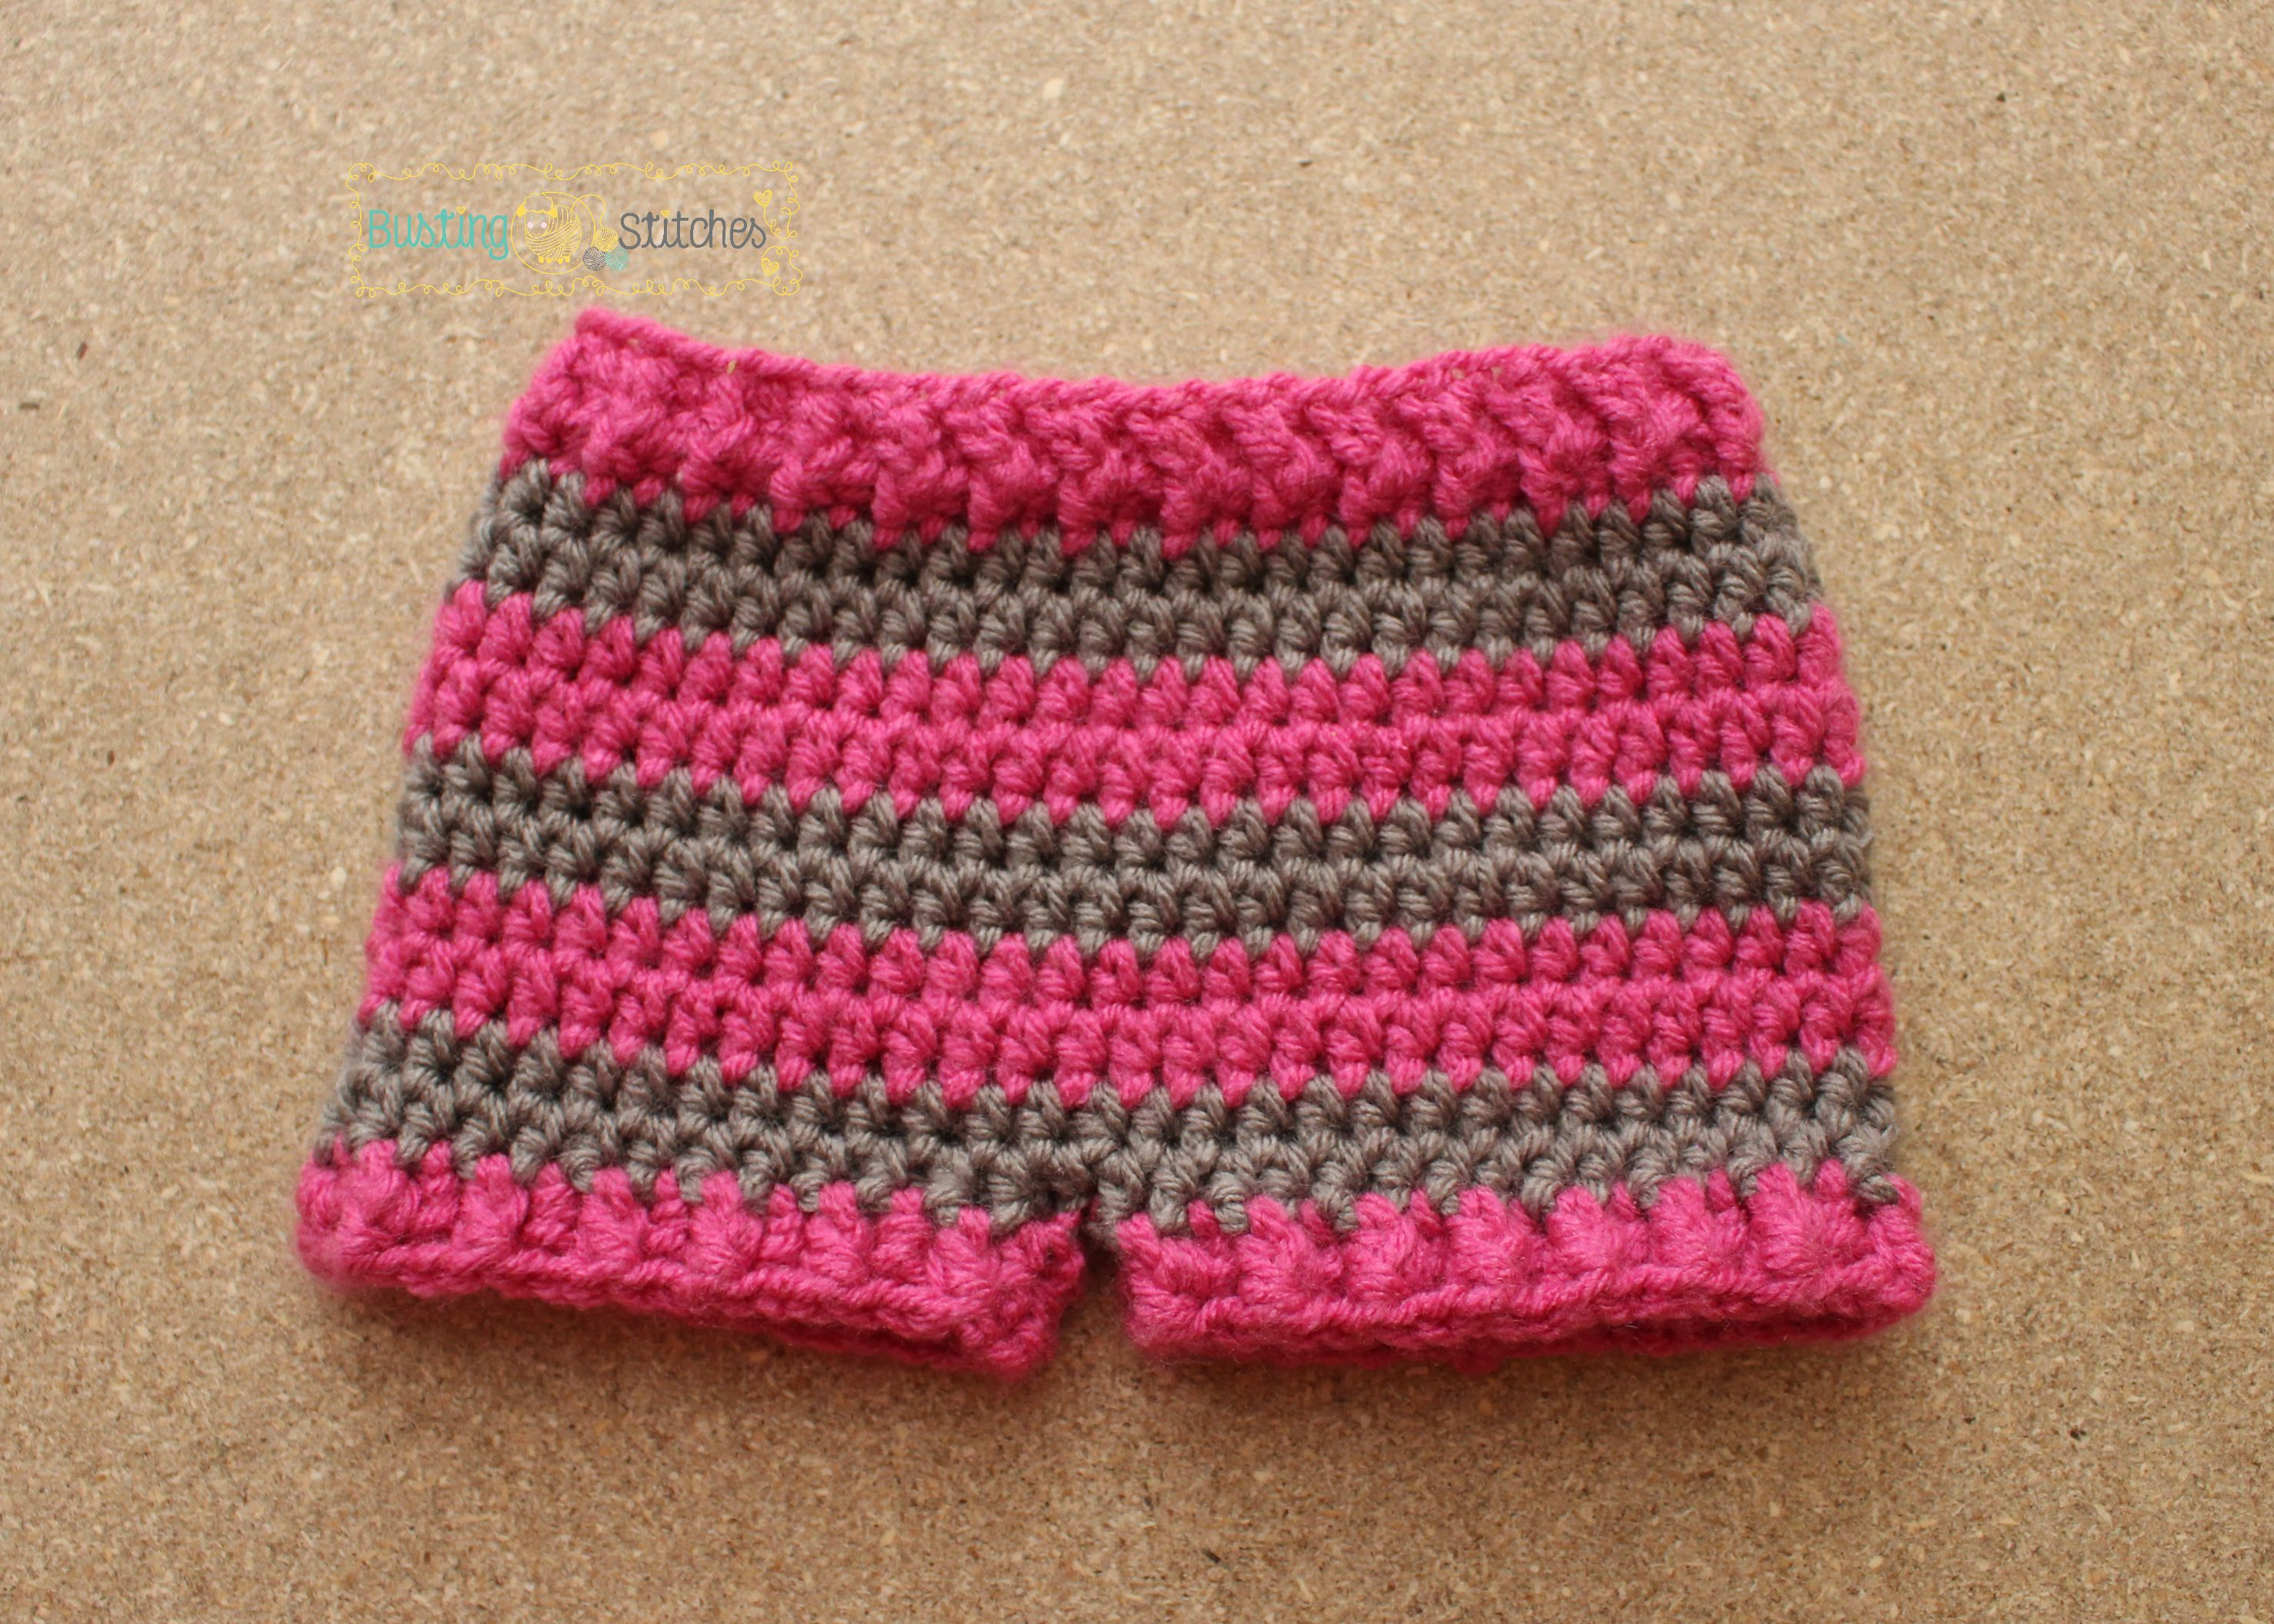 Simple Striped Shorts | Stitch, Shorts and Crochet patterns baby